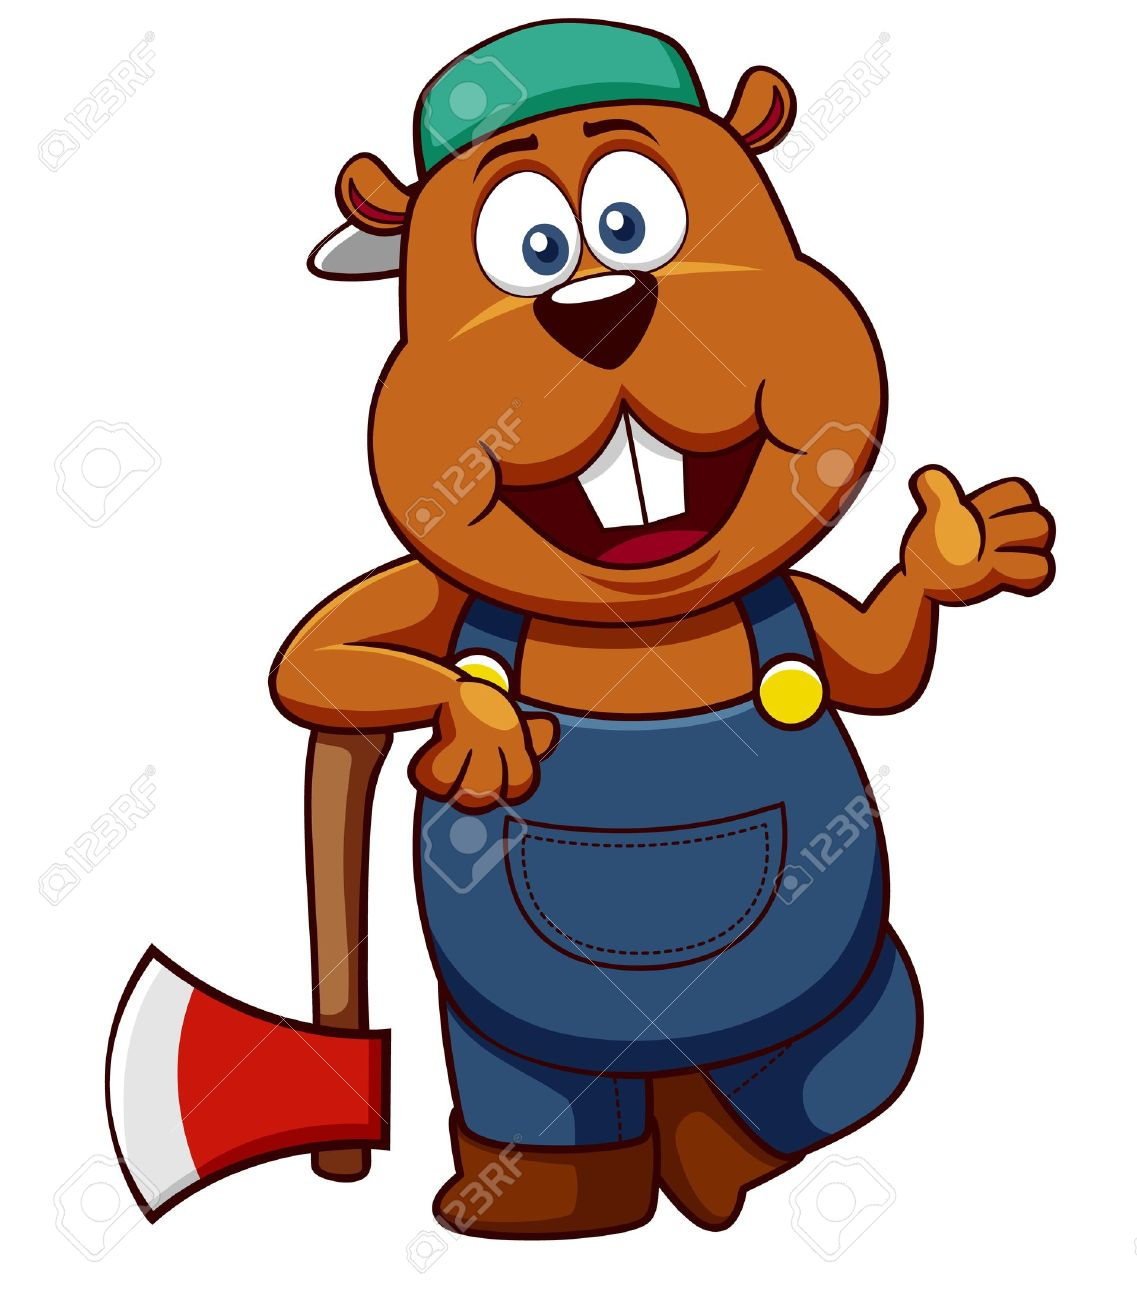 Woodchuck Clip Art Illustrations  Clipart Guide